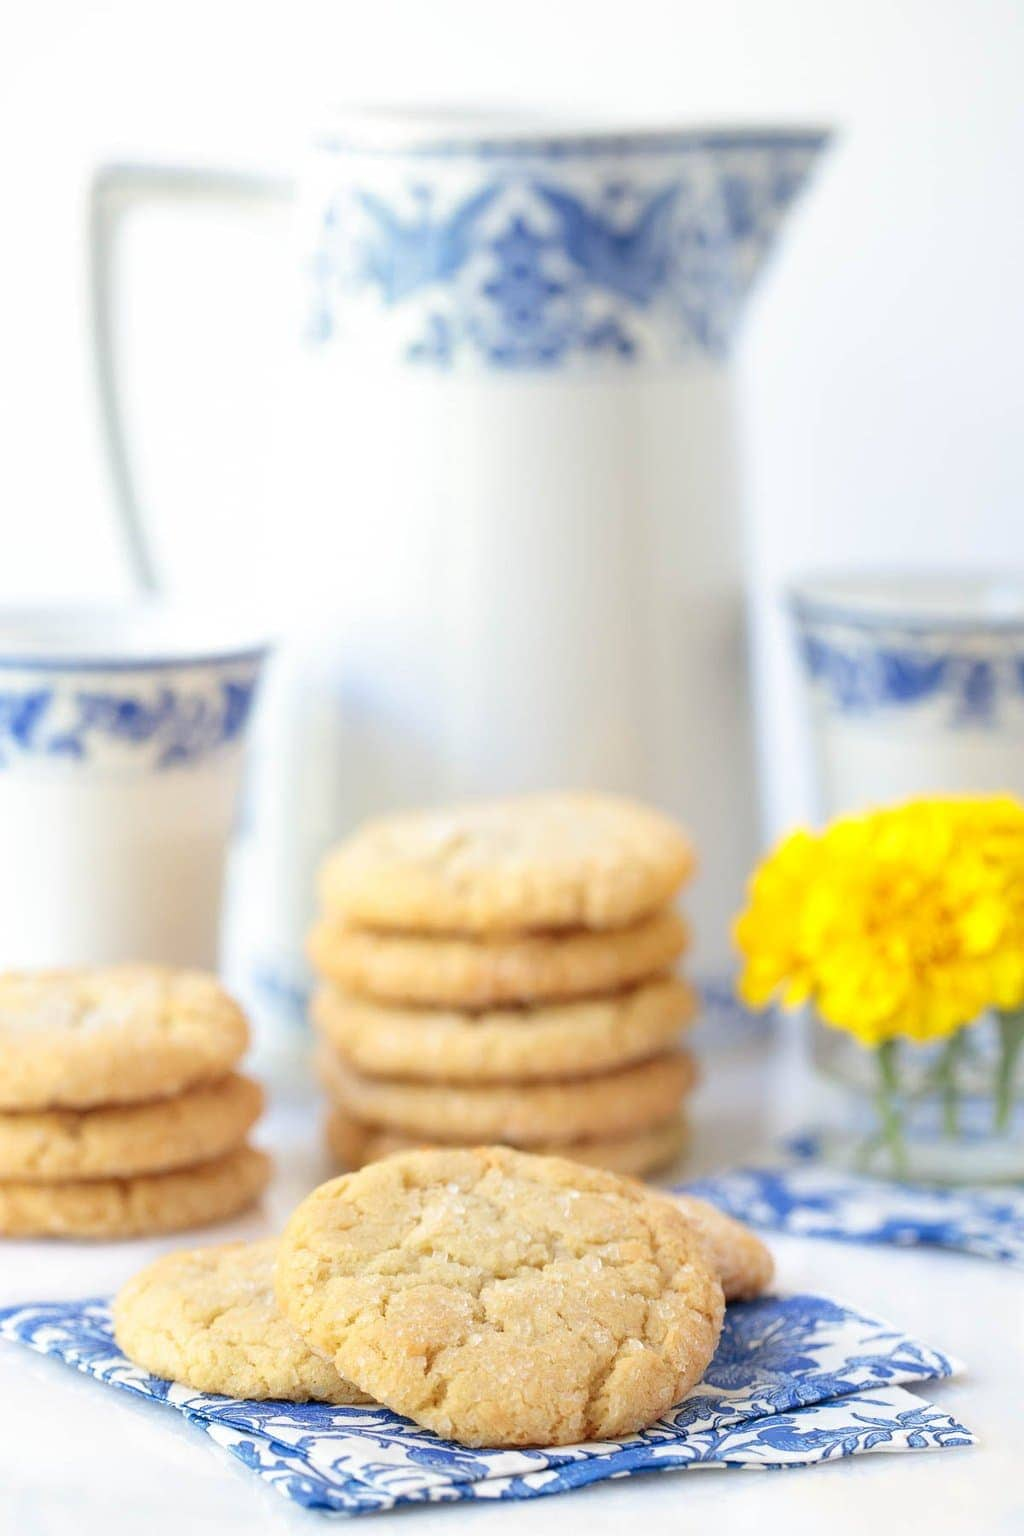 Photo of piles of Lemon Coconut Sugar Cookies in front of a white and delft blue milk pitcher and cups.